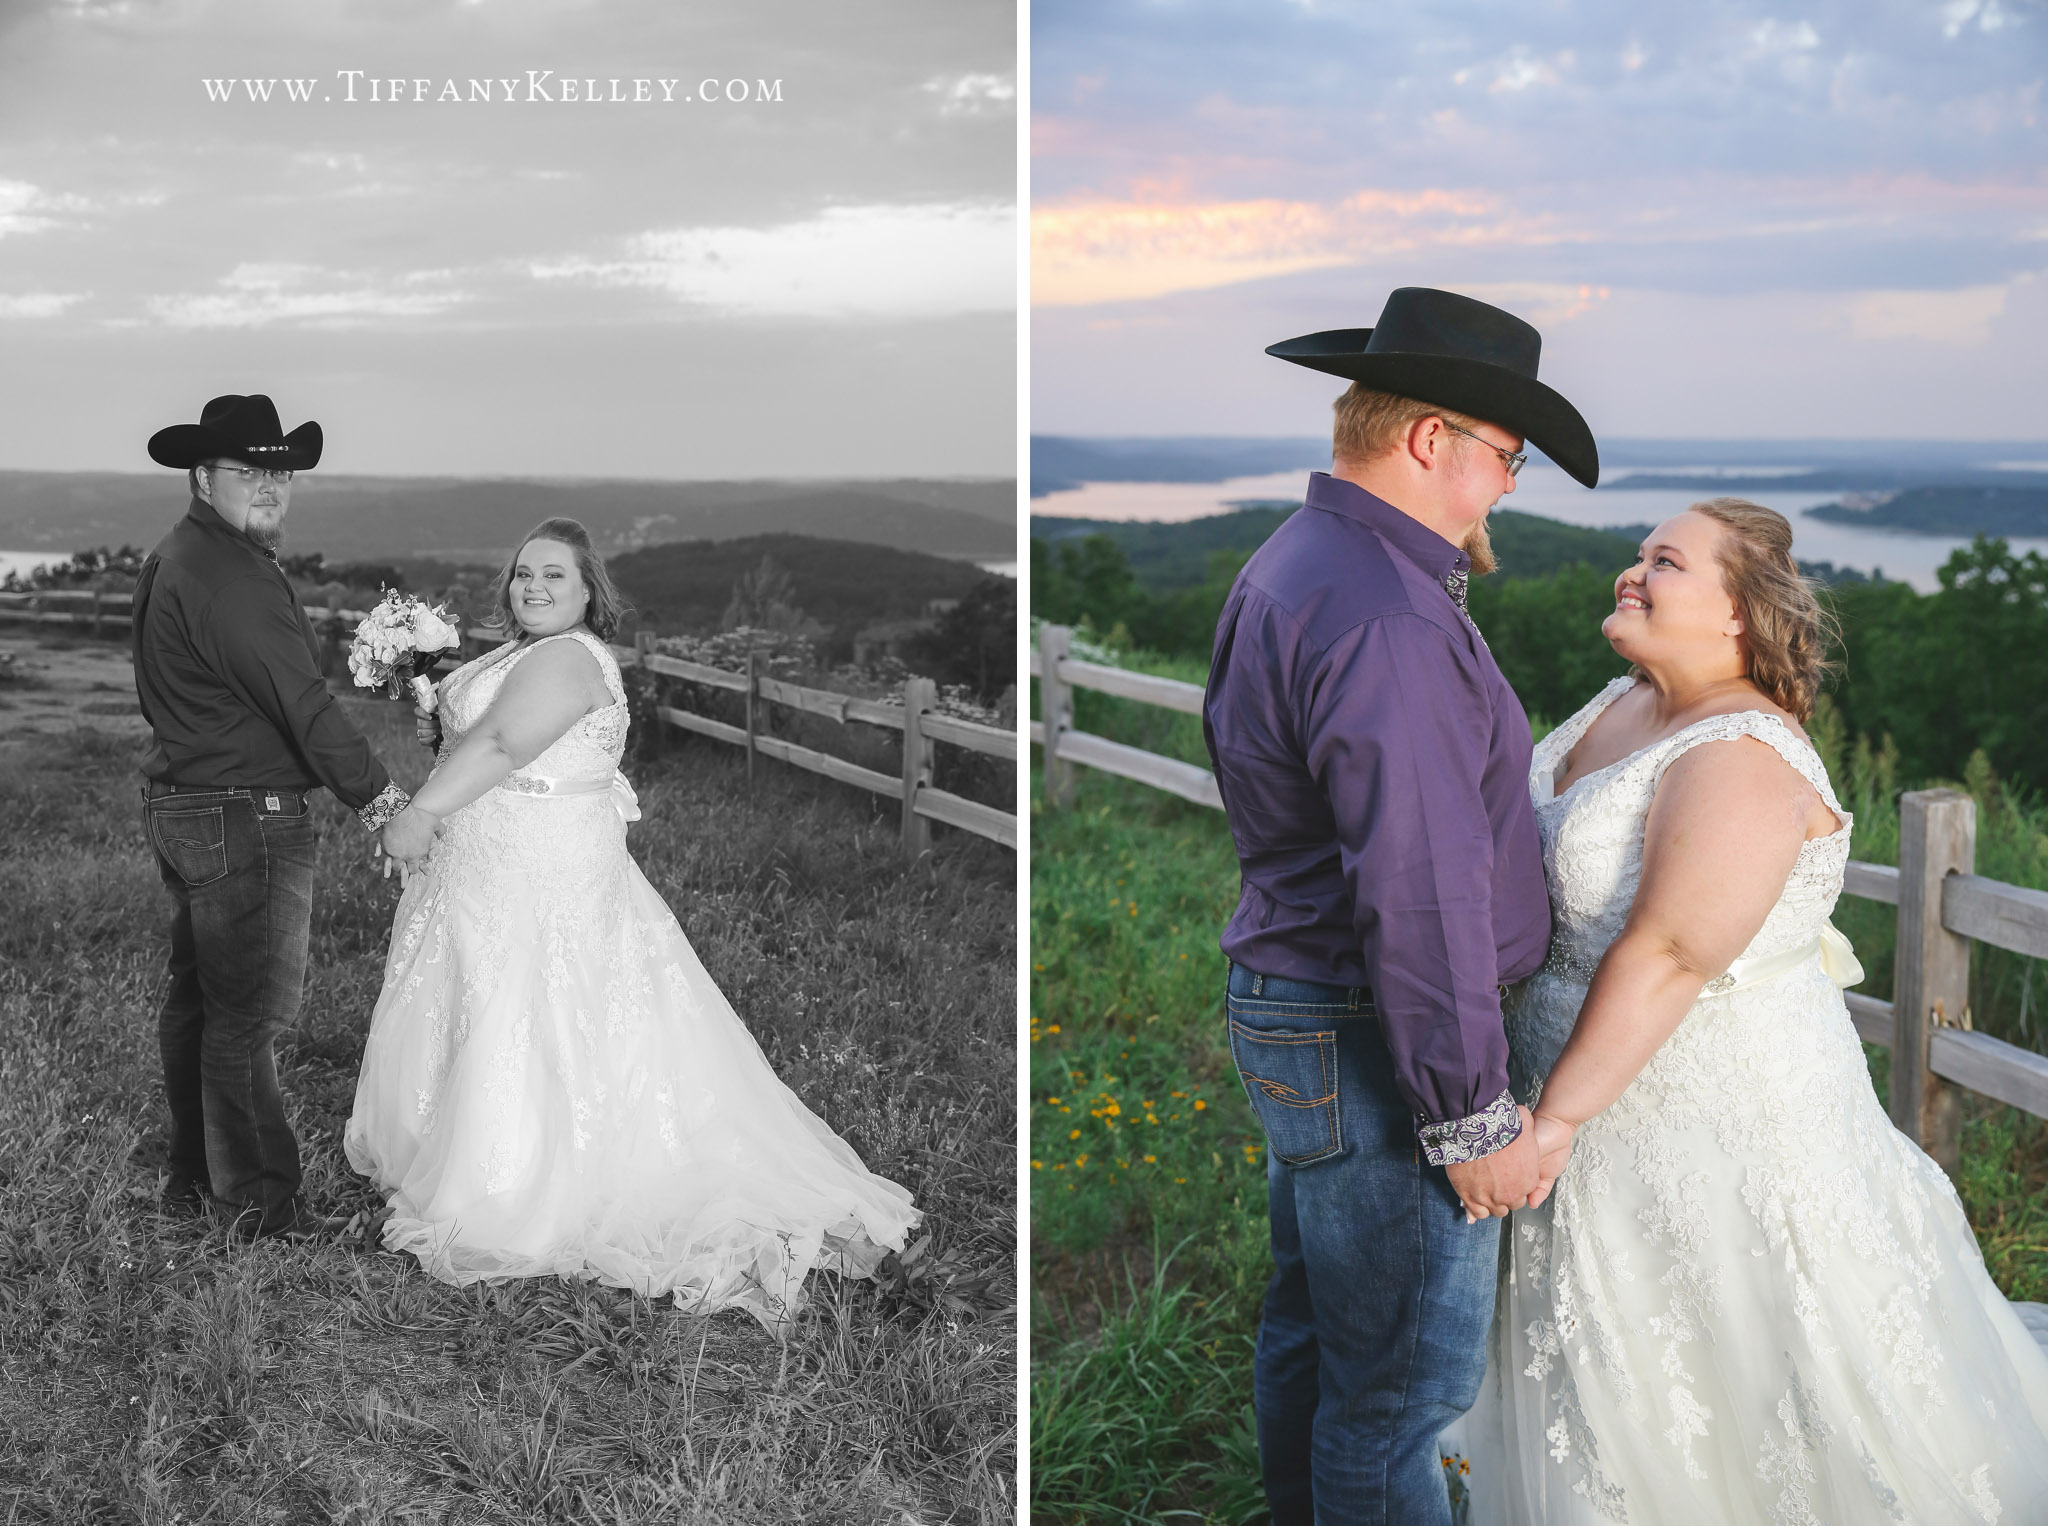 branson-missouri-big-cedar-lodge-wedding-photographer-tiffany-kelley-photography-16